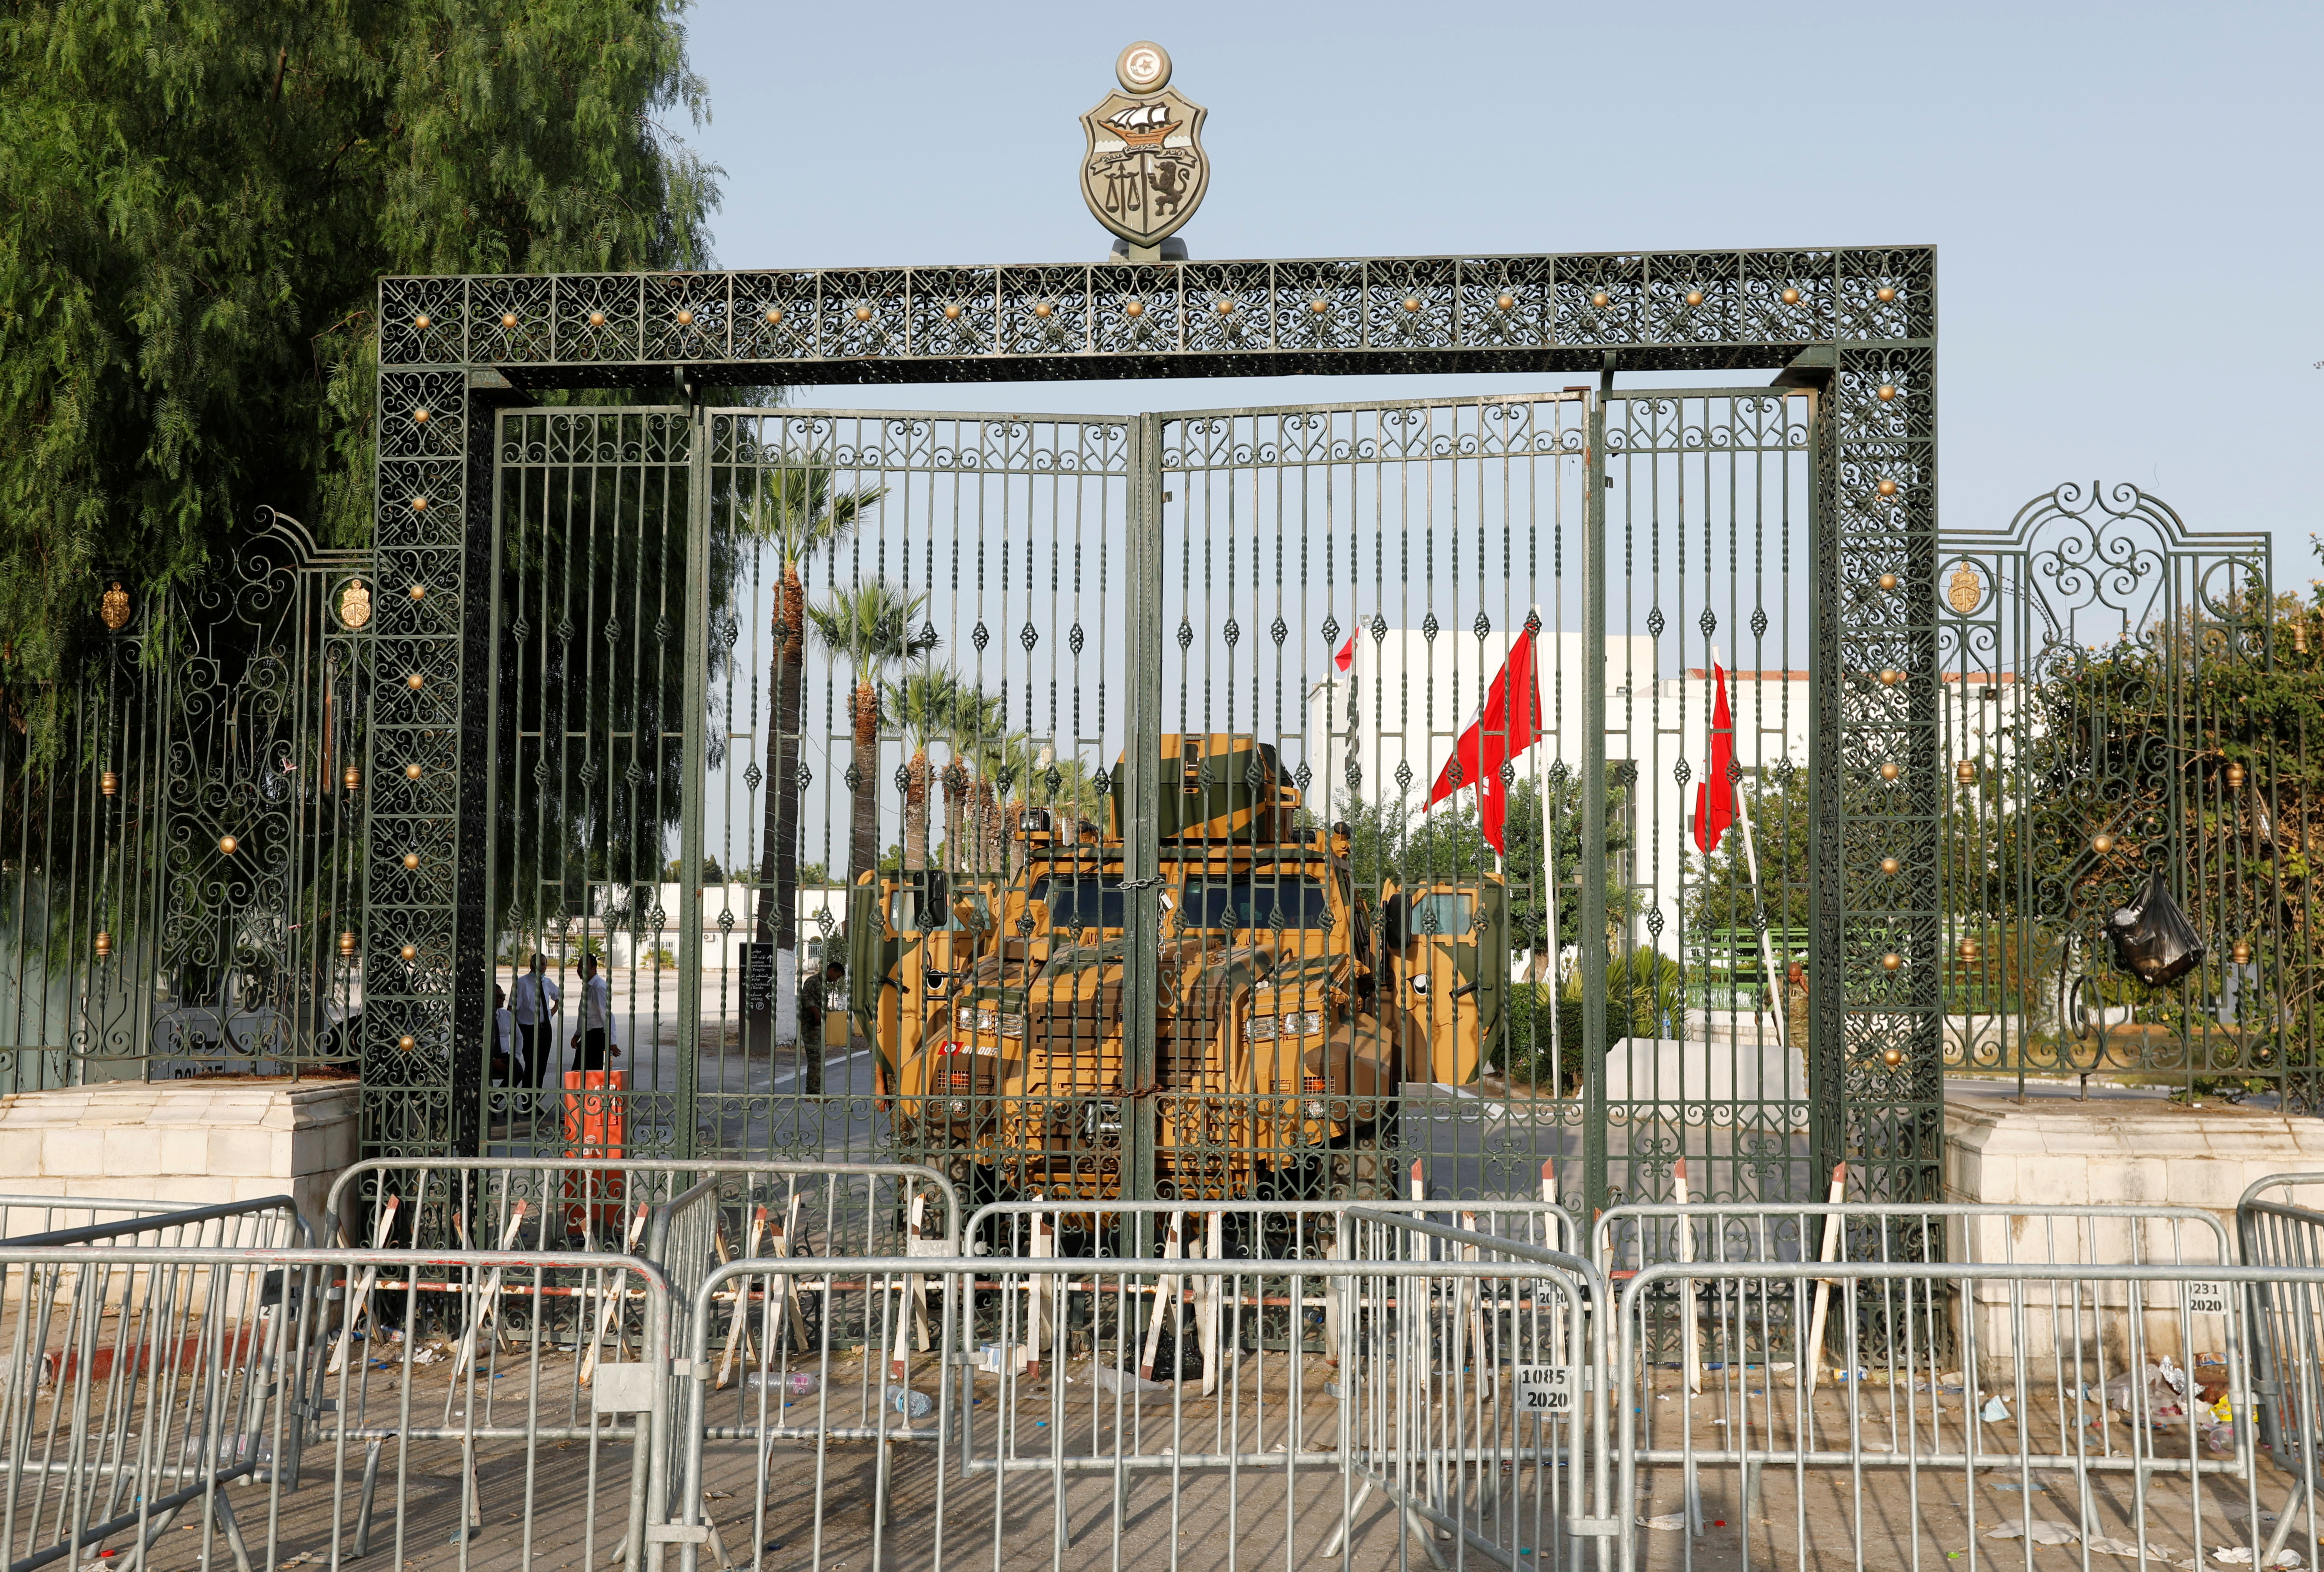 A military vehicle is pictured in front of the parliament building in Tunis, Tunisia  July 26, 2021. REUTERS/Zoubeir Souissi